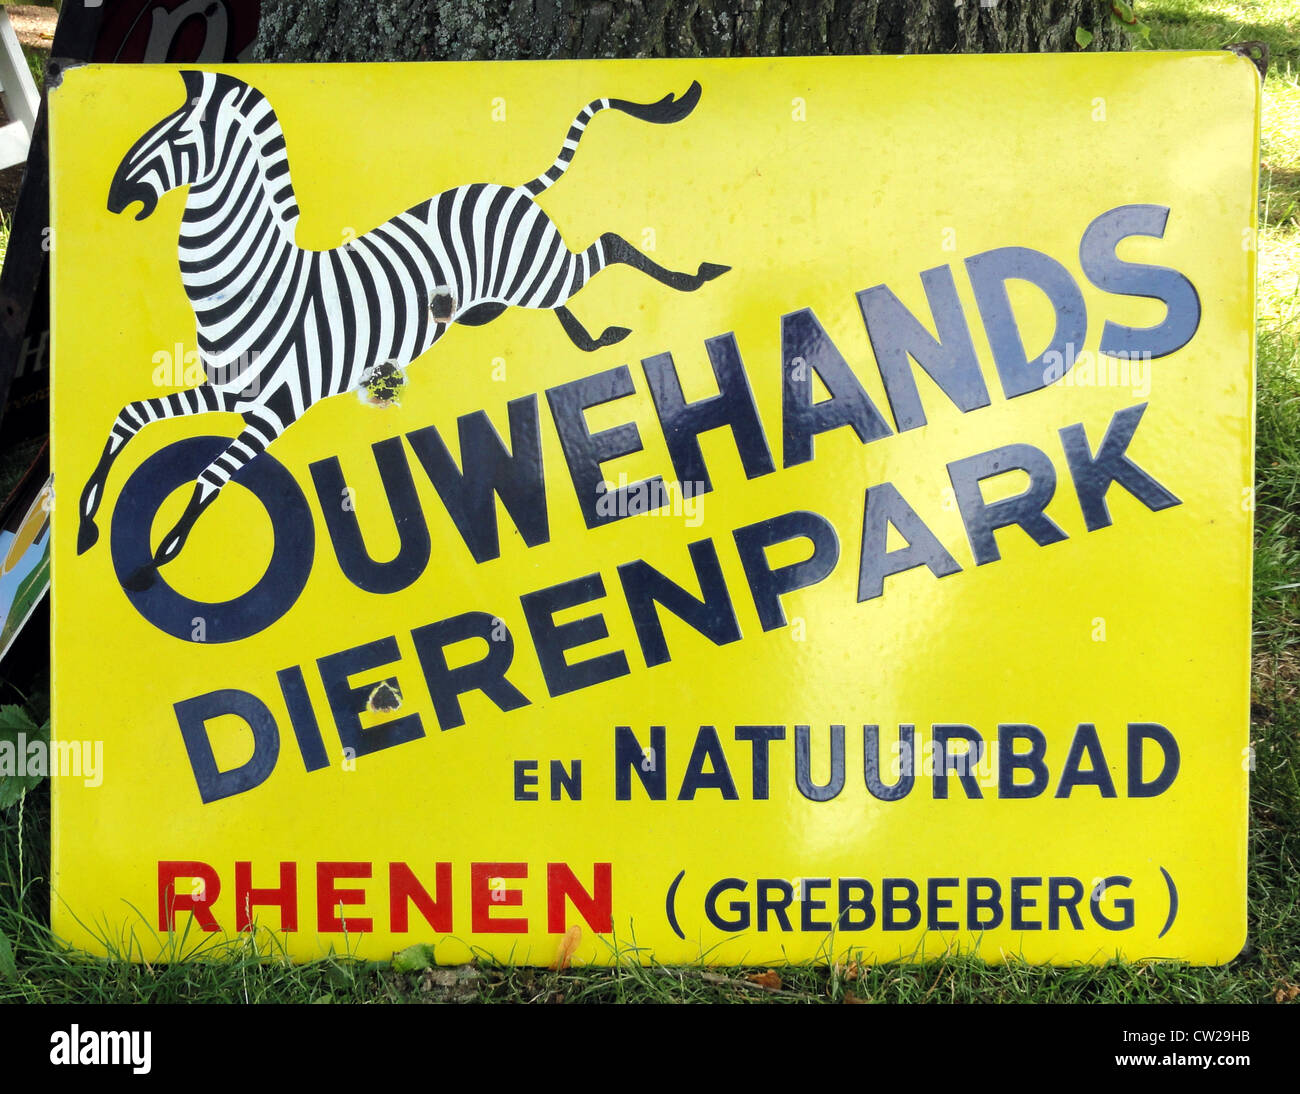 Ouwehands Dierenpark en Natuurbad. Emaille reclame bord. - Stock Image